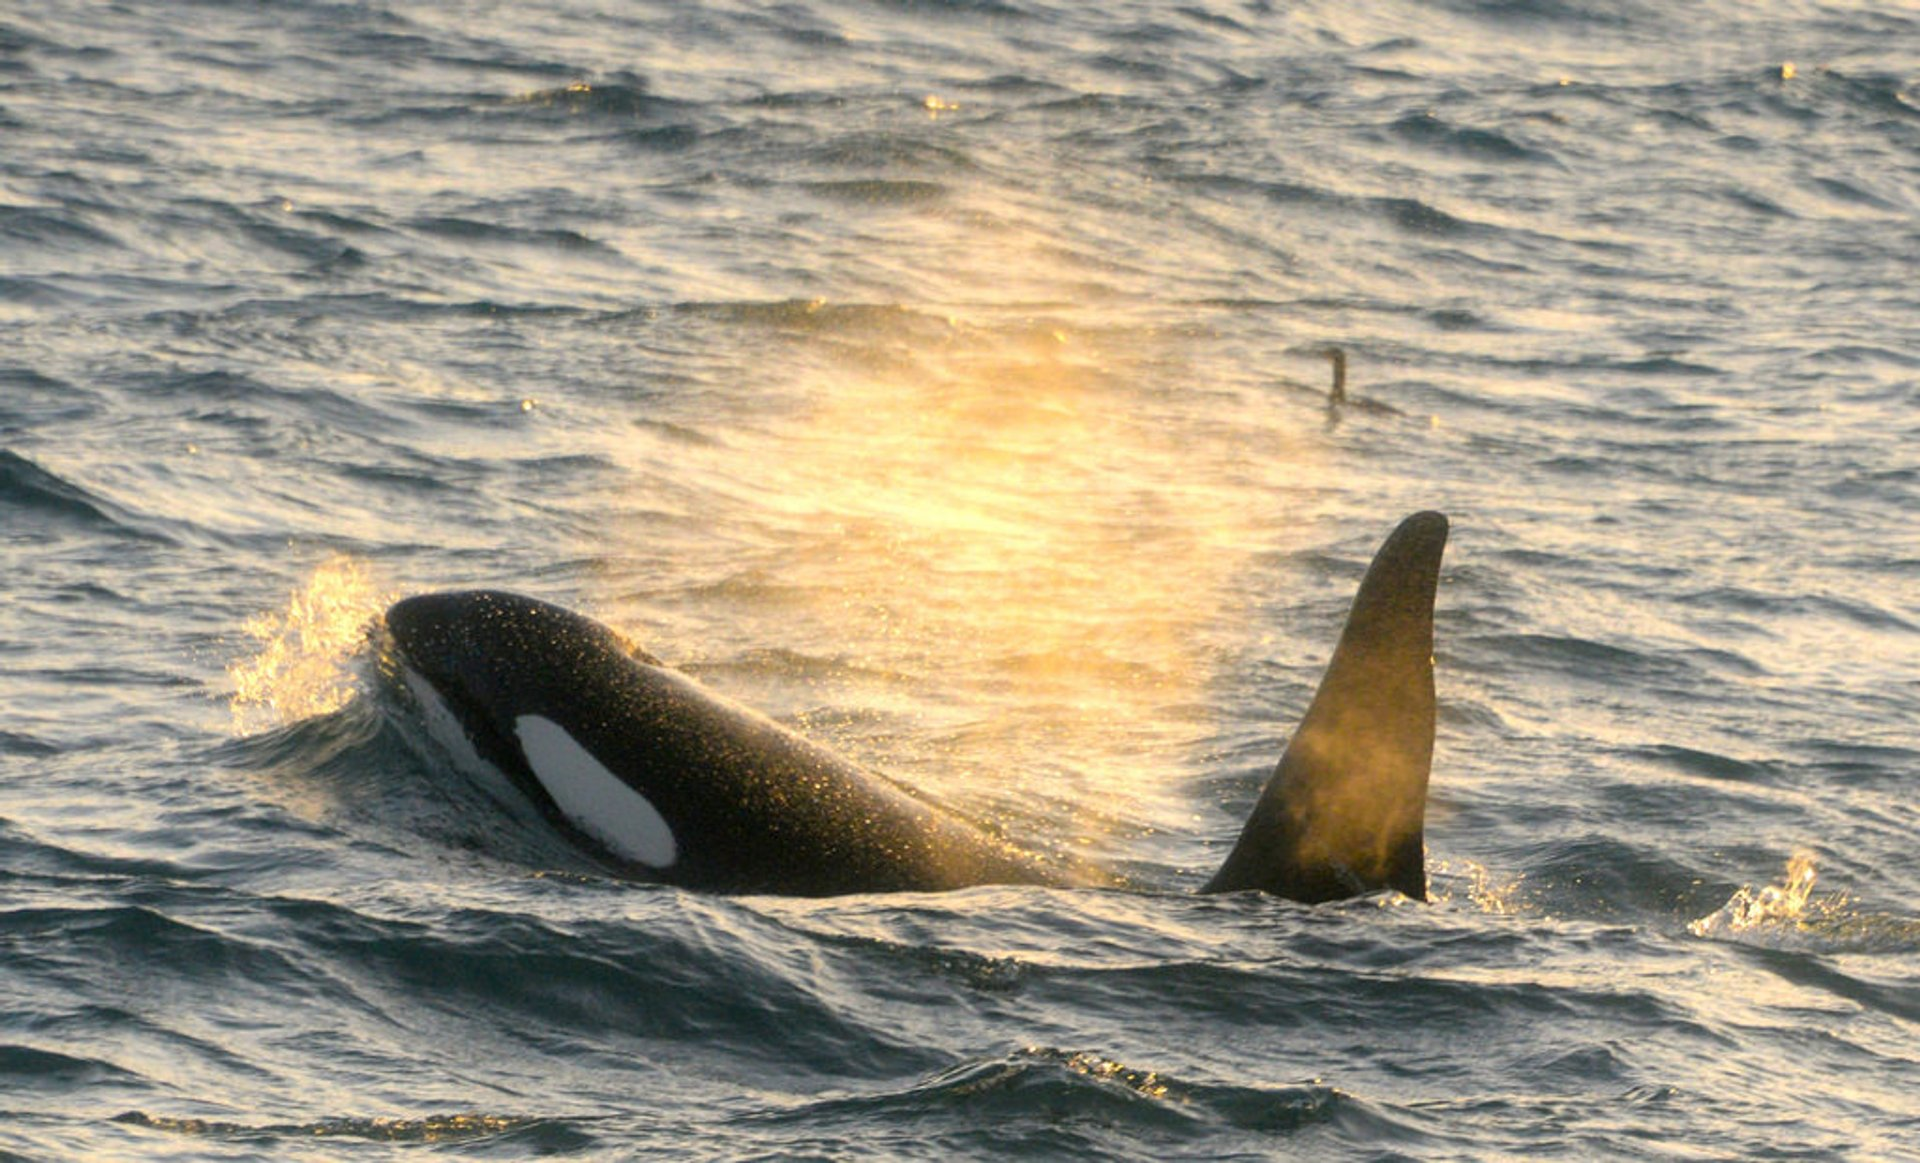 Orca (Killer) Whale Watching in Iceland 2020 - Best Time